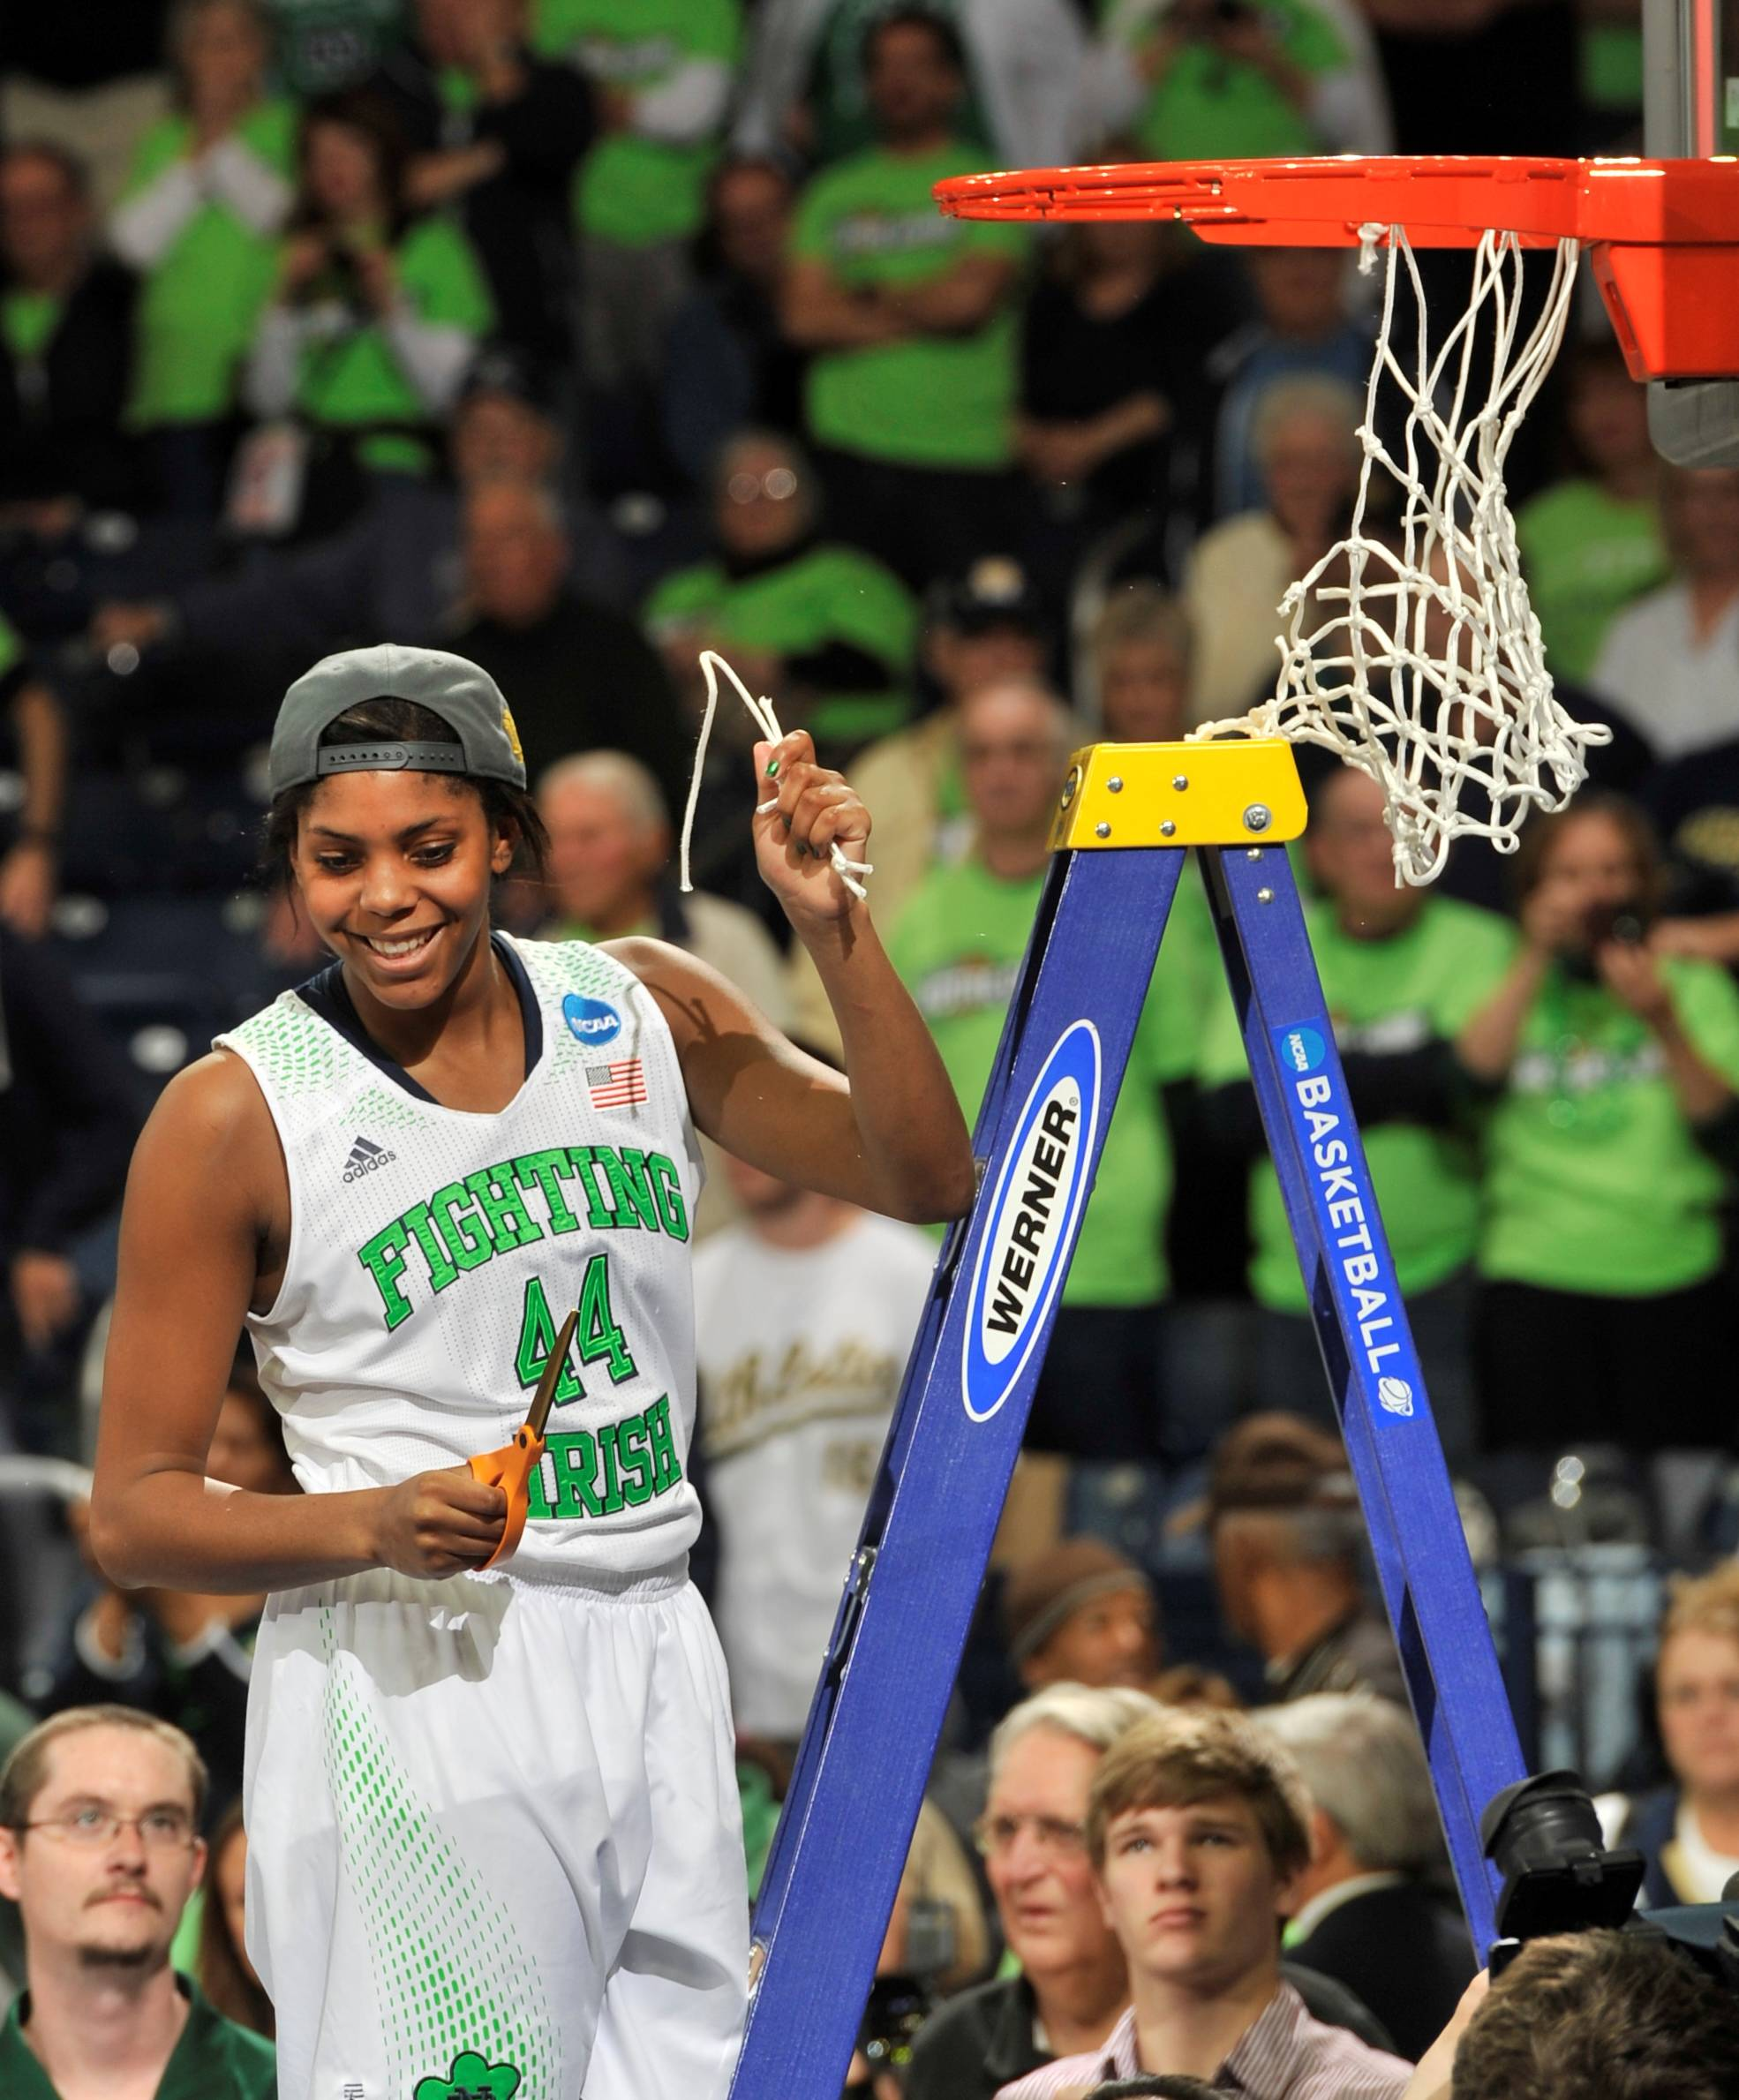 Notre Dame forward Ariel Braker holds a piece of the net Monday after an NCAA women's regional final game at the Purcell Pavilion in South Bend, Ind. Notre Dame beat Baylor 88-69 to advance to the Final Four.